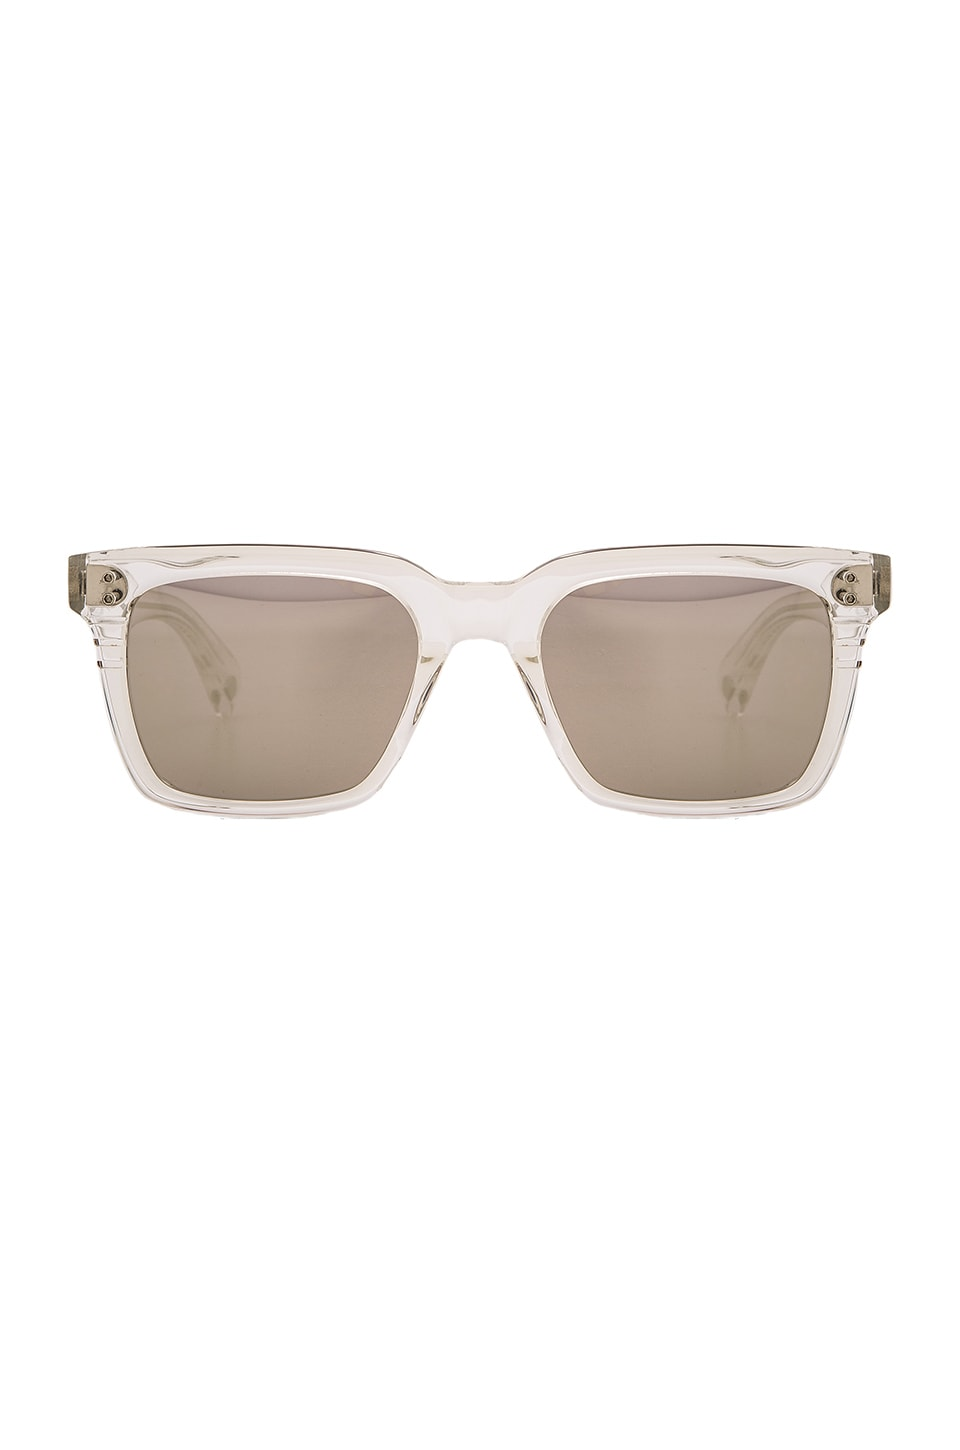 11329c94d5a Dita Sequoia Sunglasses in Crystal Clear